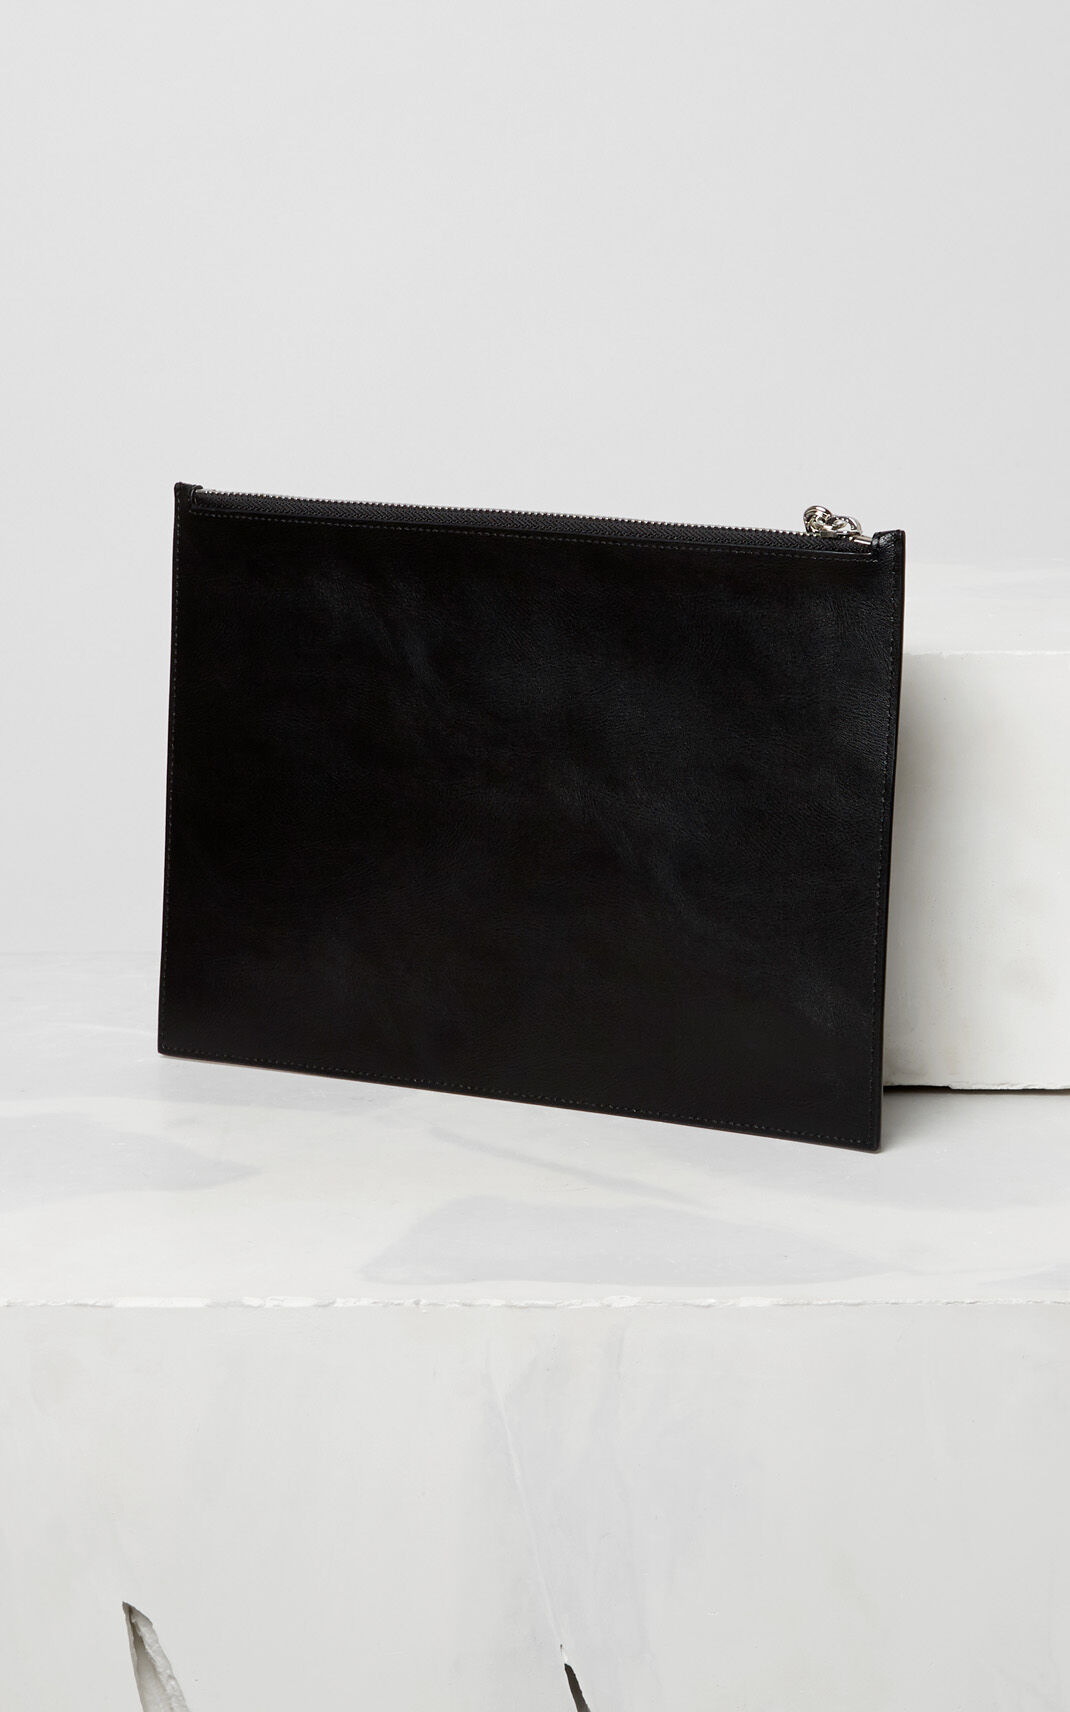 BLACK 'Holiday Capsule' A4 KENZO Clutch Bag for unisex